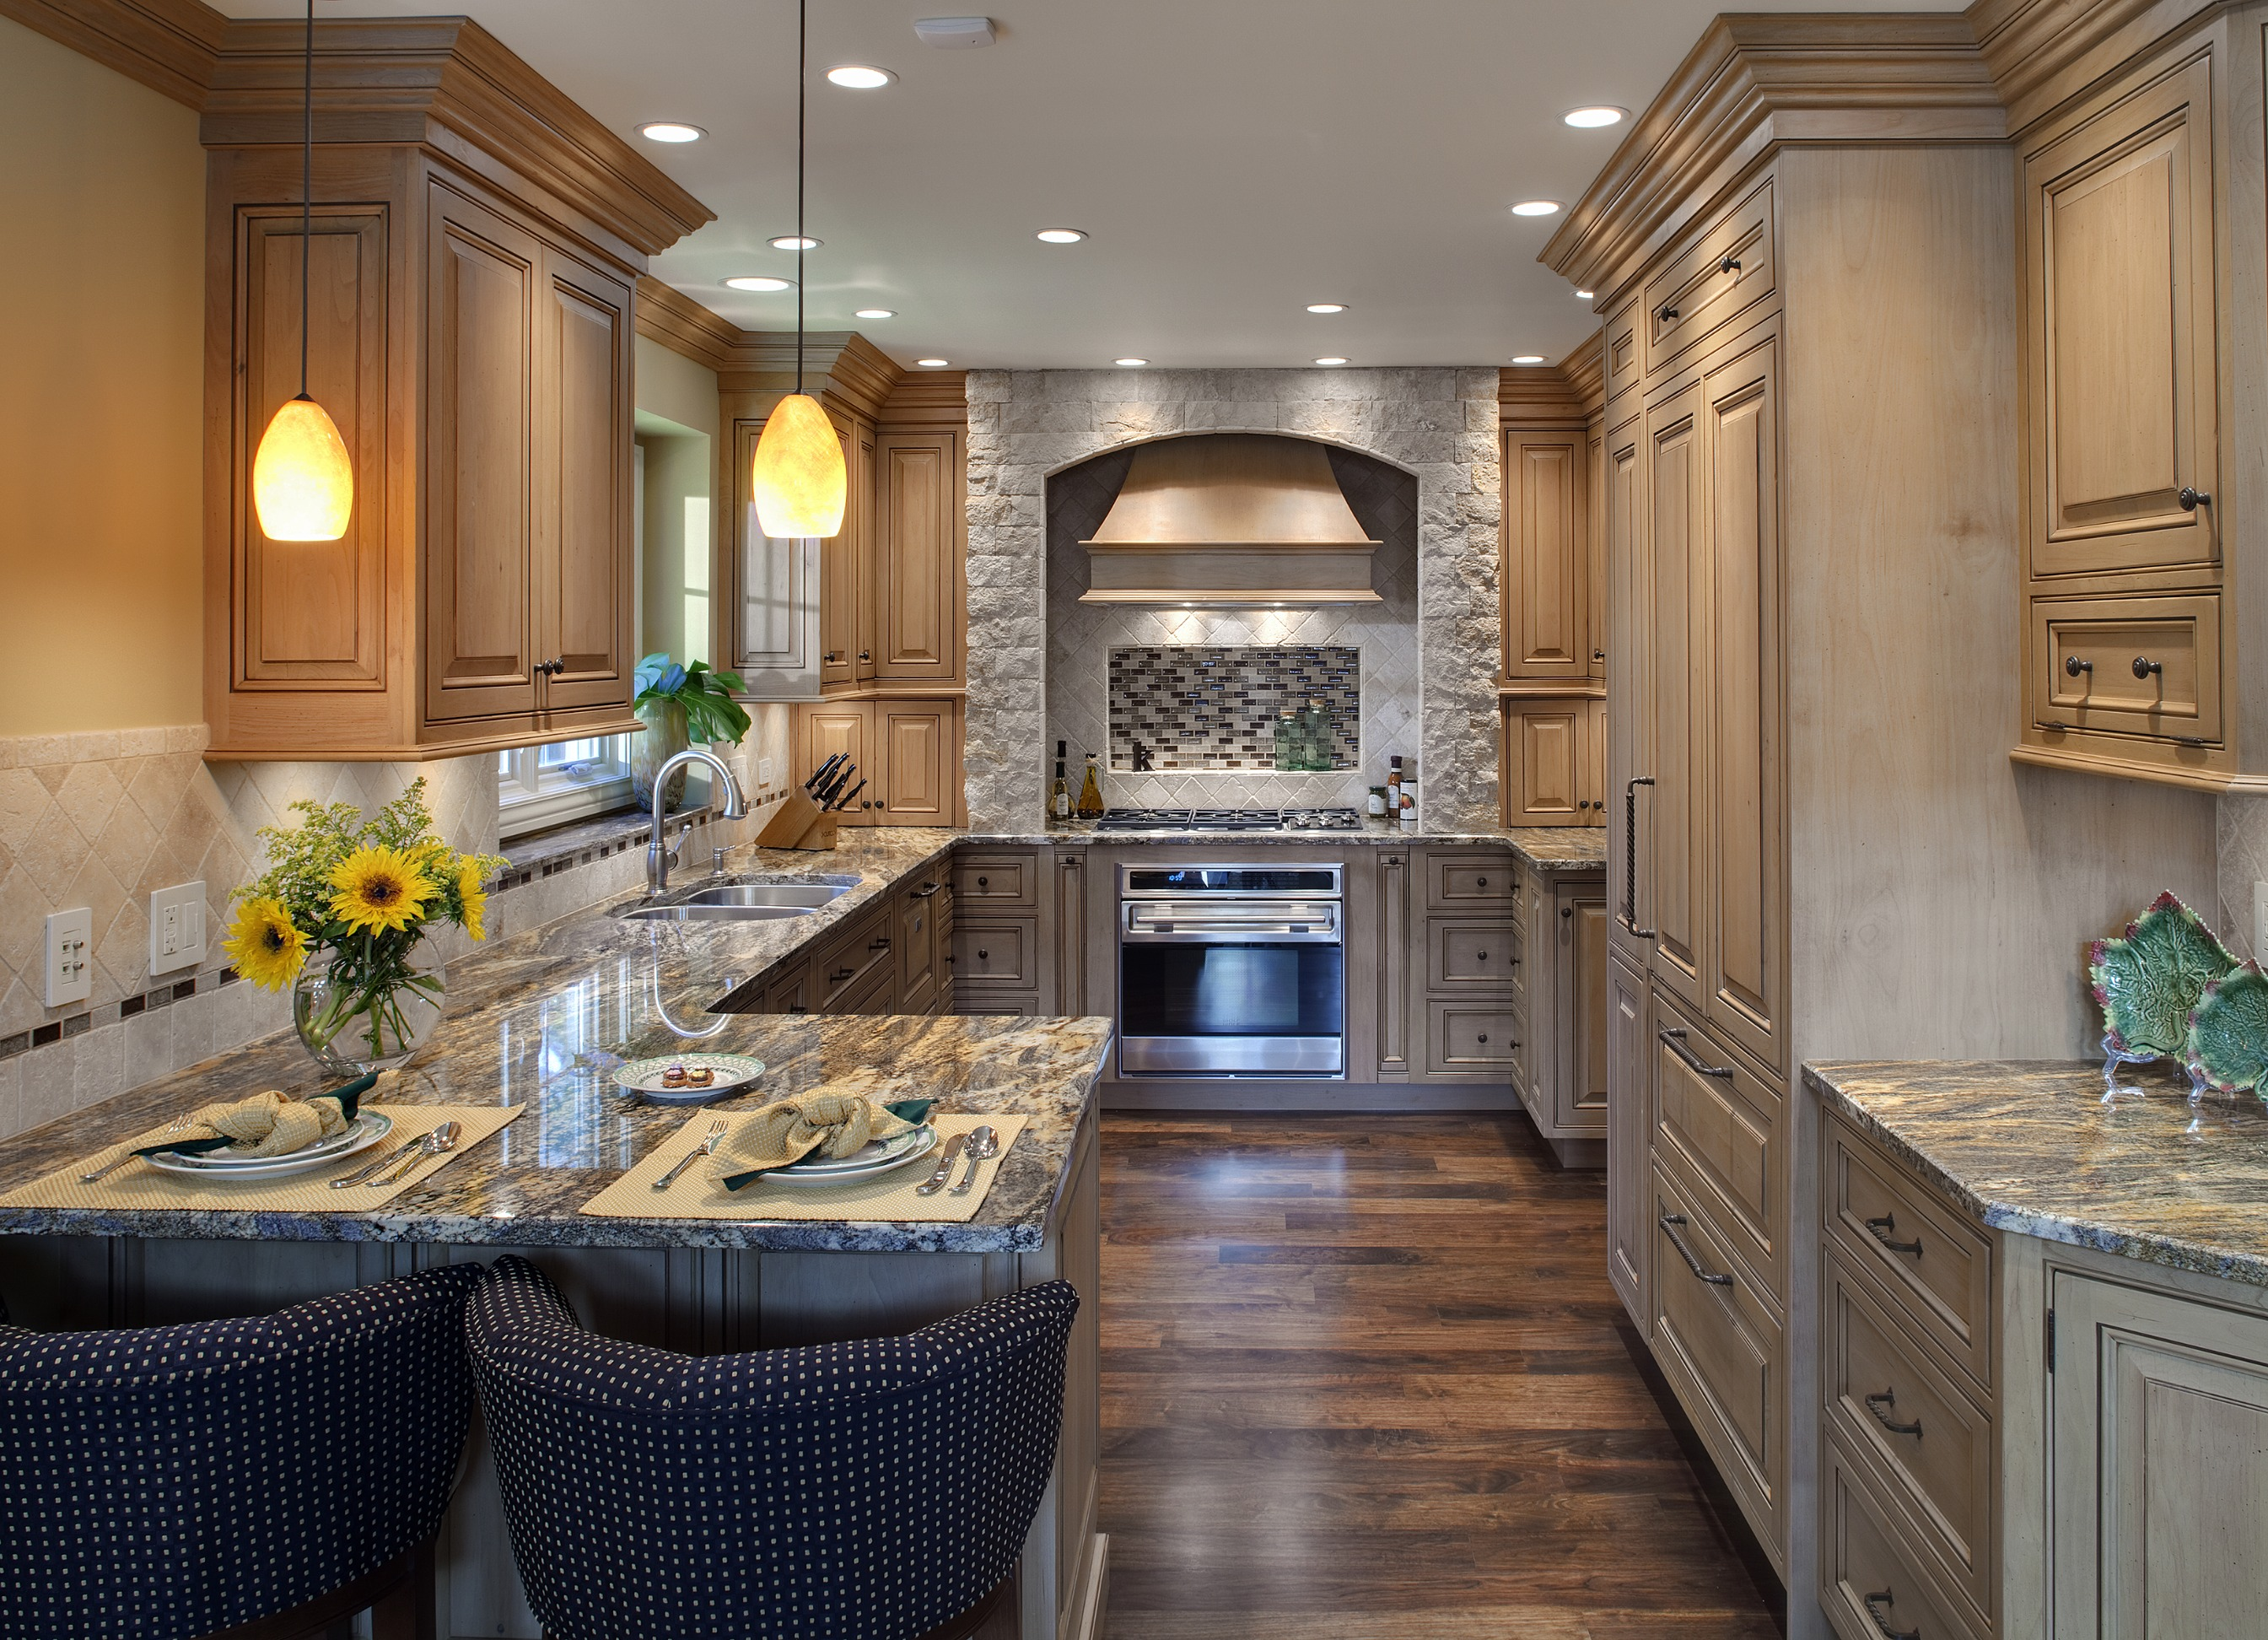 kitchenremodelingwheatondrurydesign